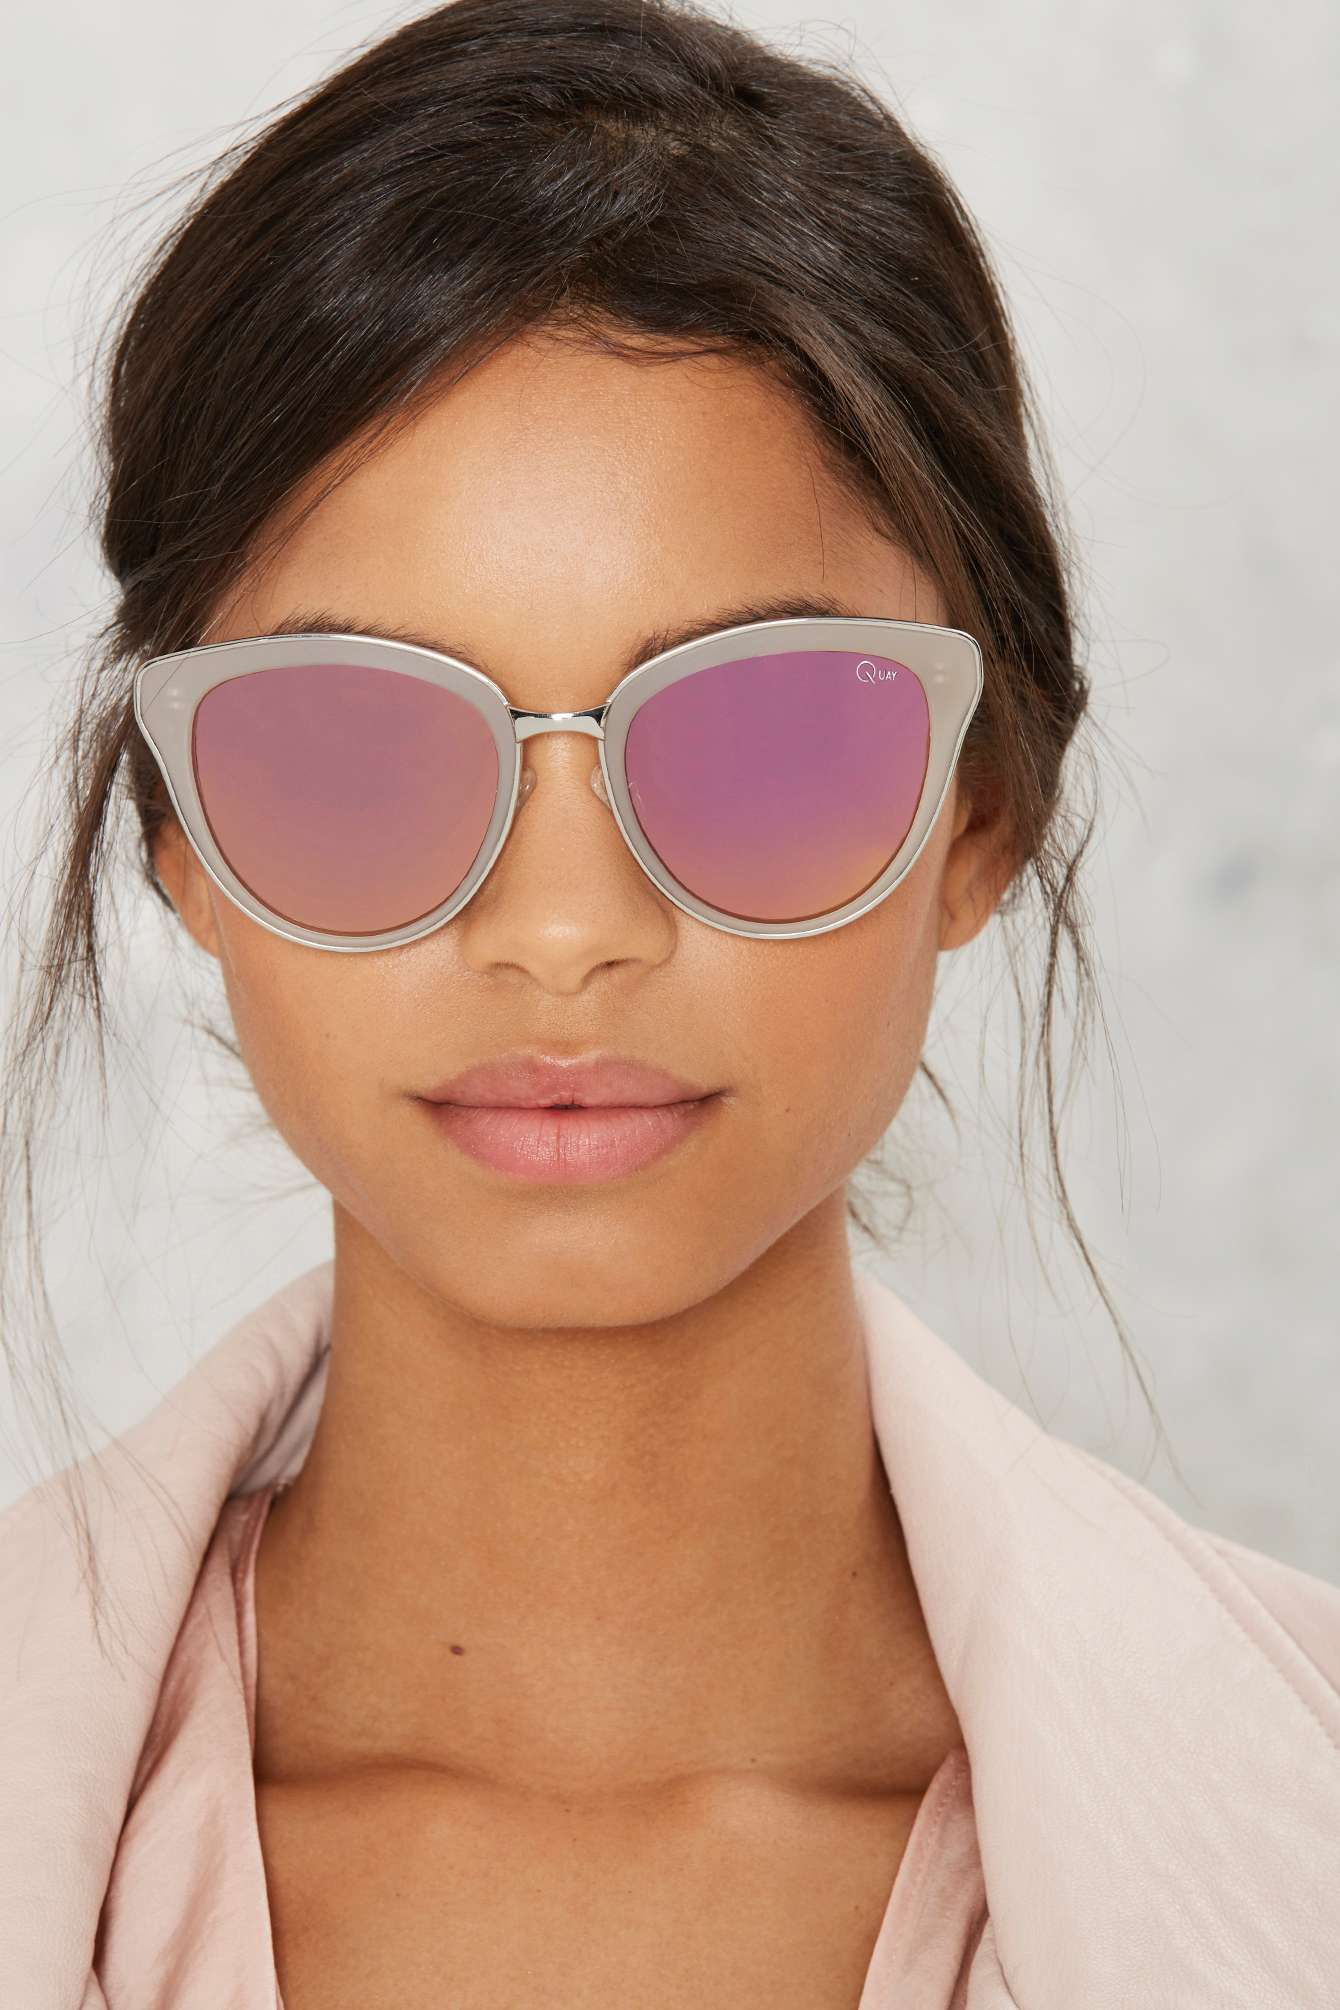 Quay Every Little Thing Cat-Eye Shades   Shop Accessories at Nasty Gal! a674b3451a